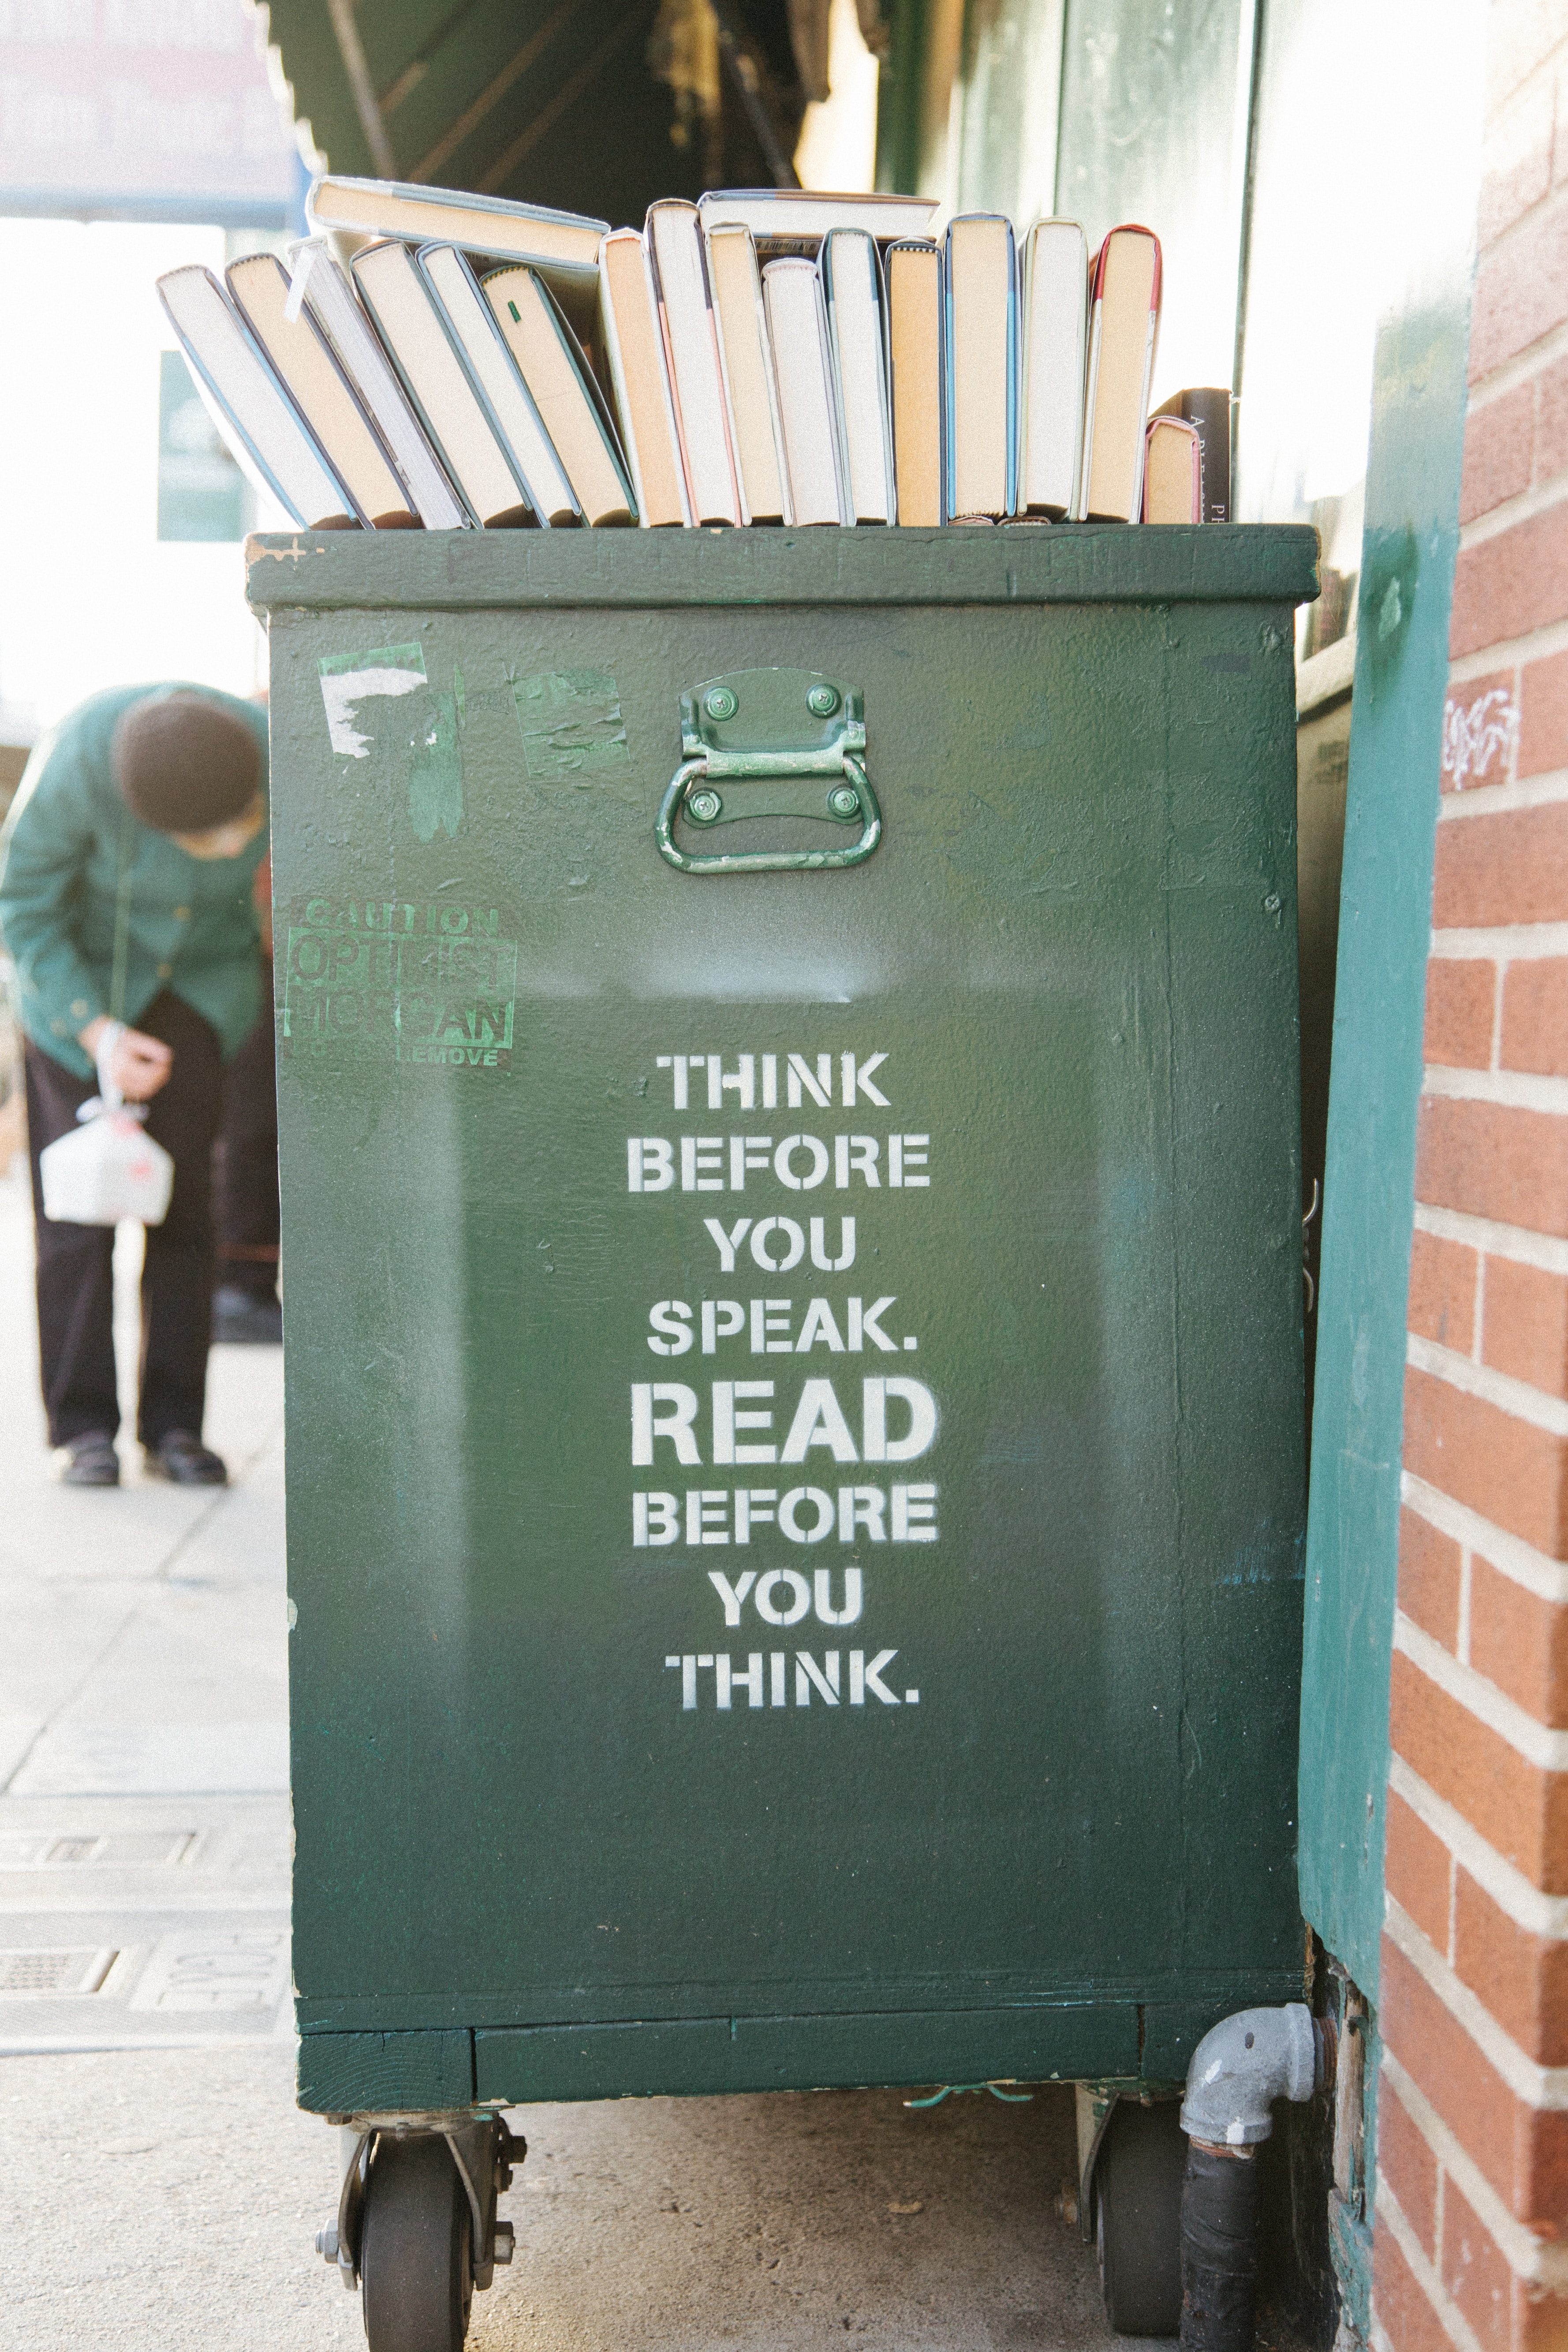 books over green trolley bin